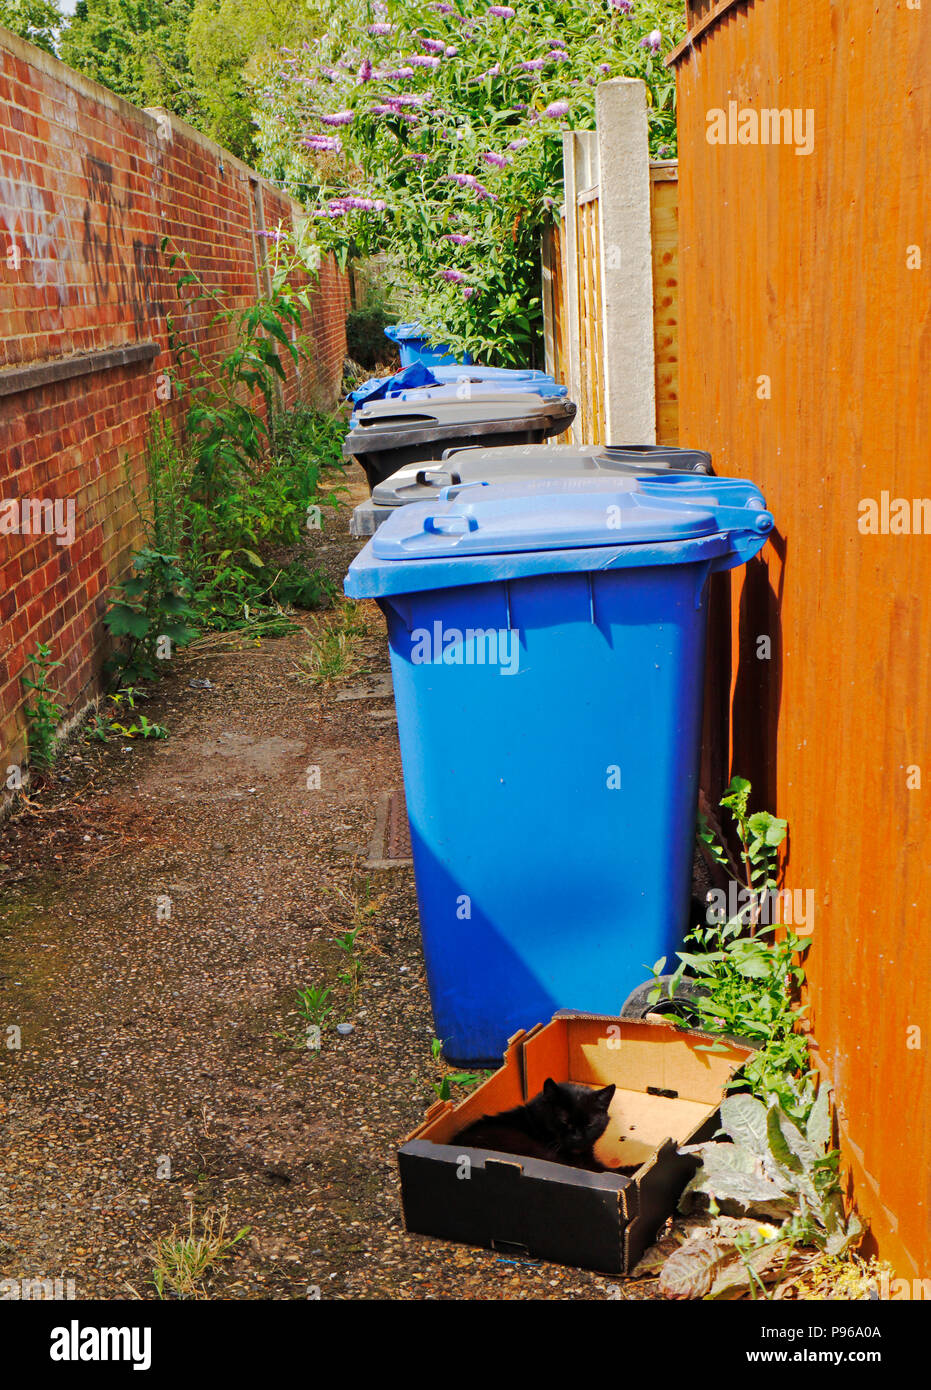 Waste and recycling bins with a cat in a box in a back alley in Norwich, Norfolk, England, United Kingdom, Europe. - Stock Image